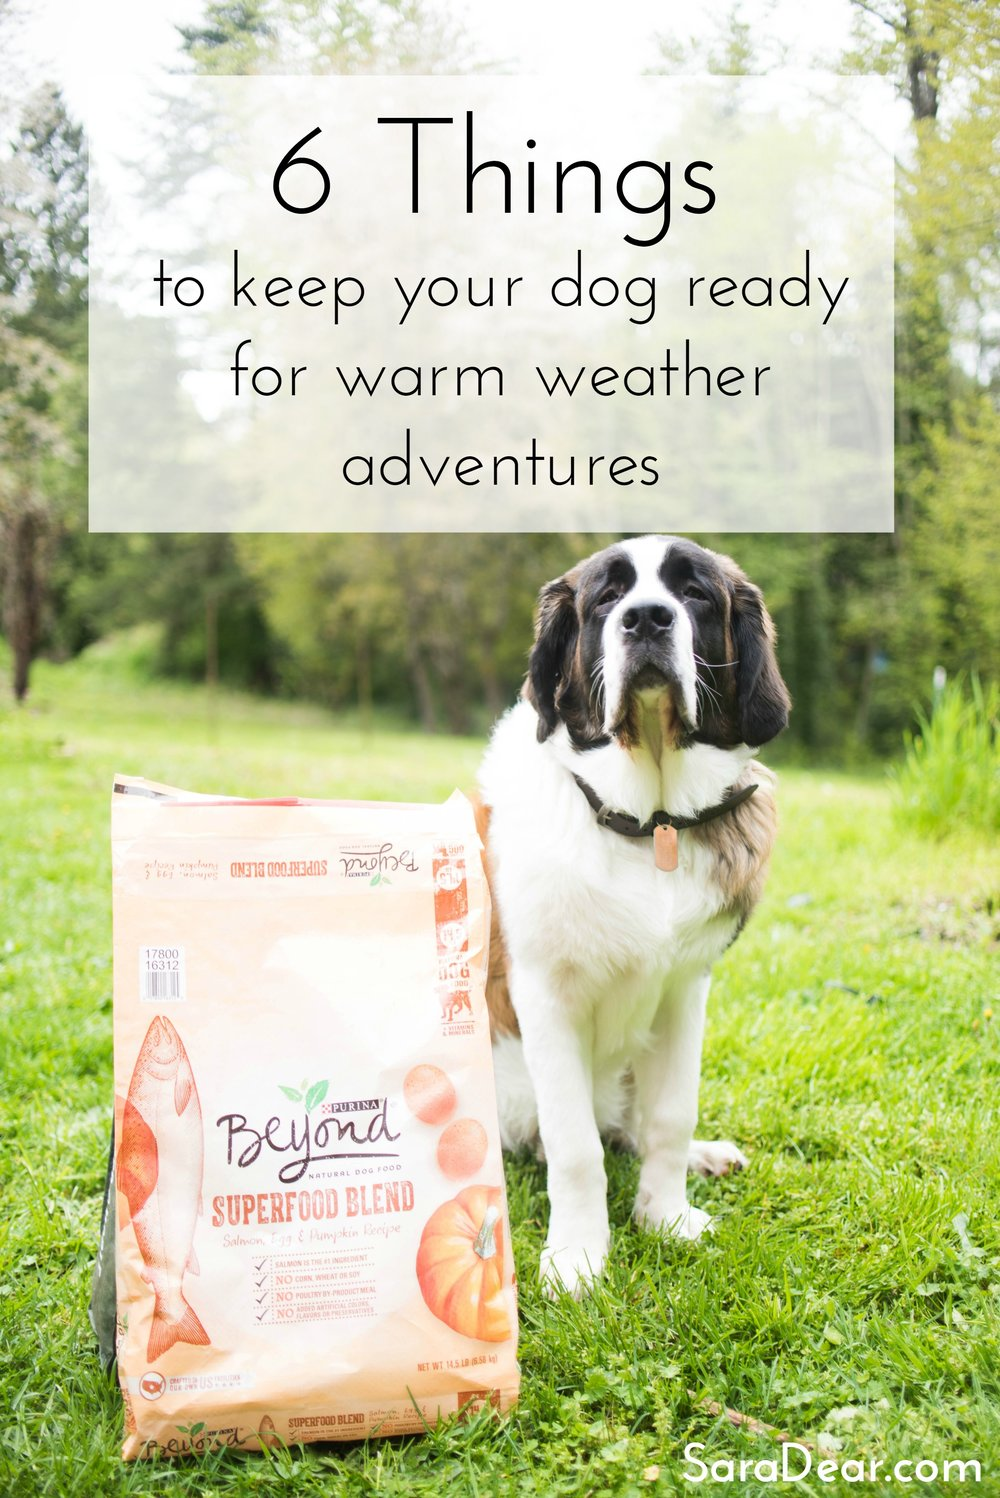 Purina Beyond 2-4 Graphic.jpg